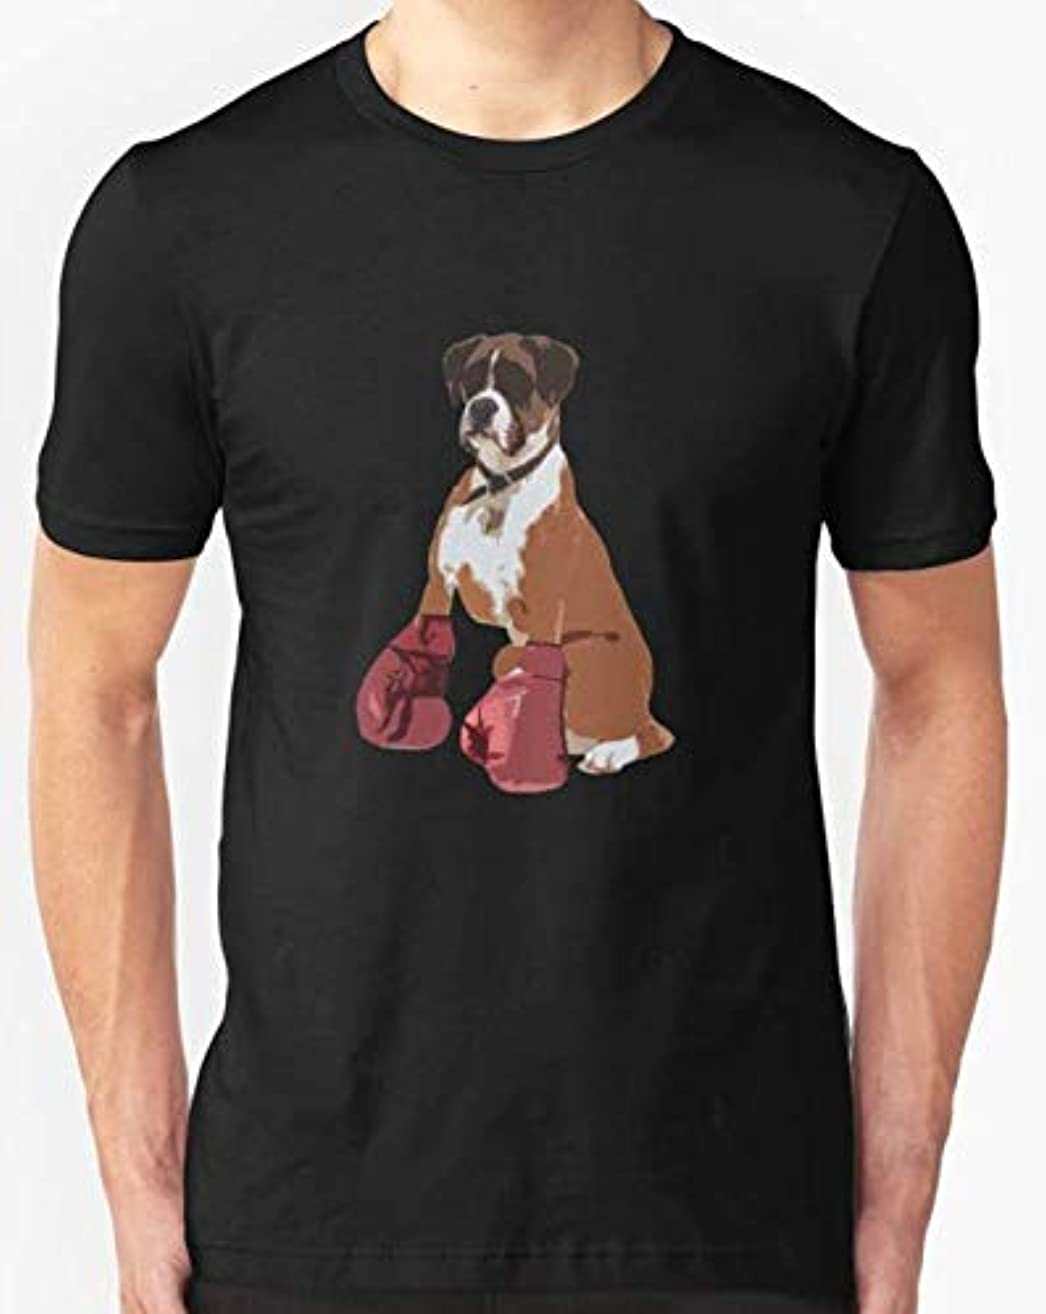 Boxer Dog Slim Fit T-Shirt For Man and Woman